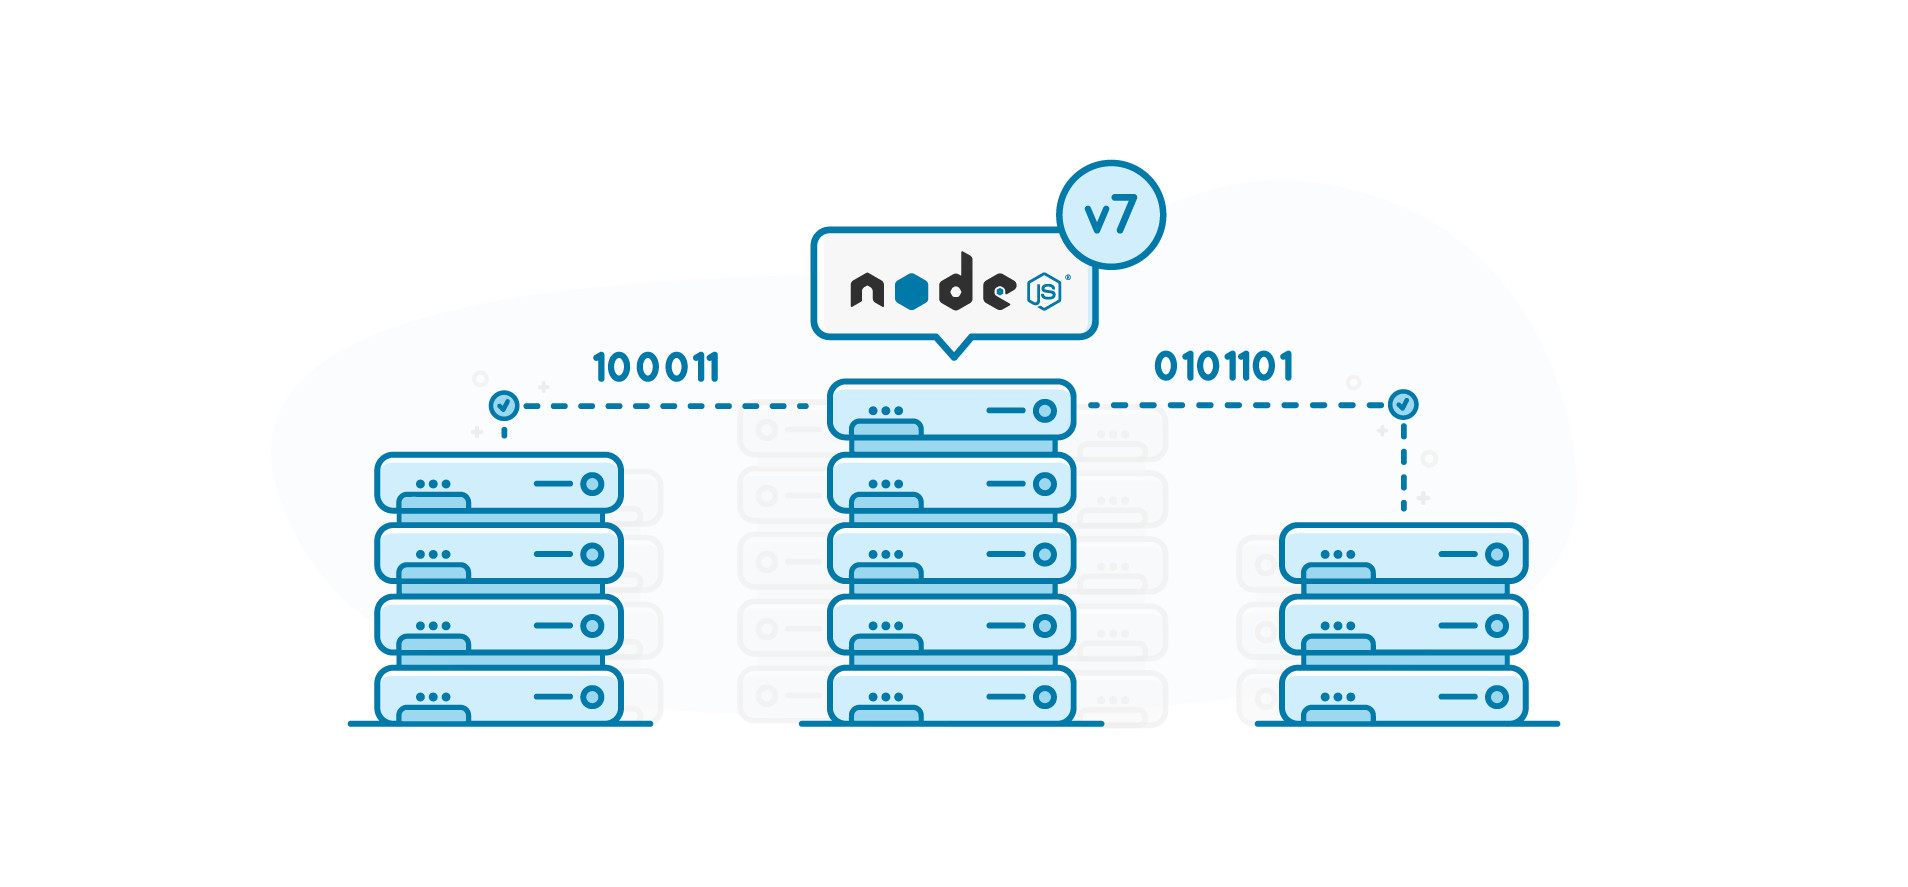 Node js v7 – URLs, deprecation warnings and a better developer